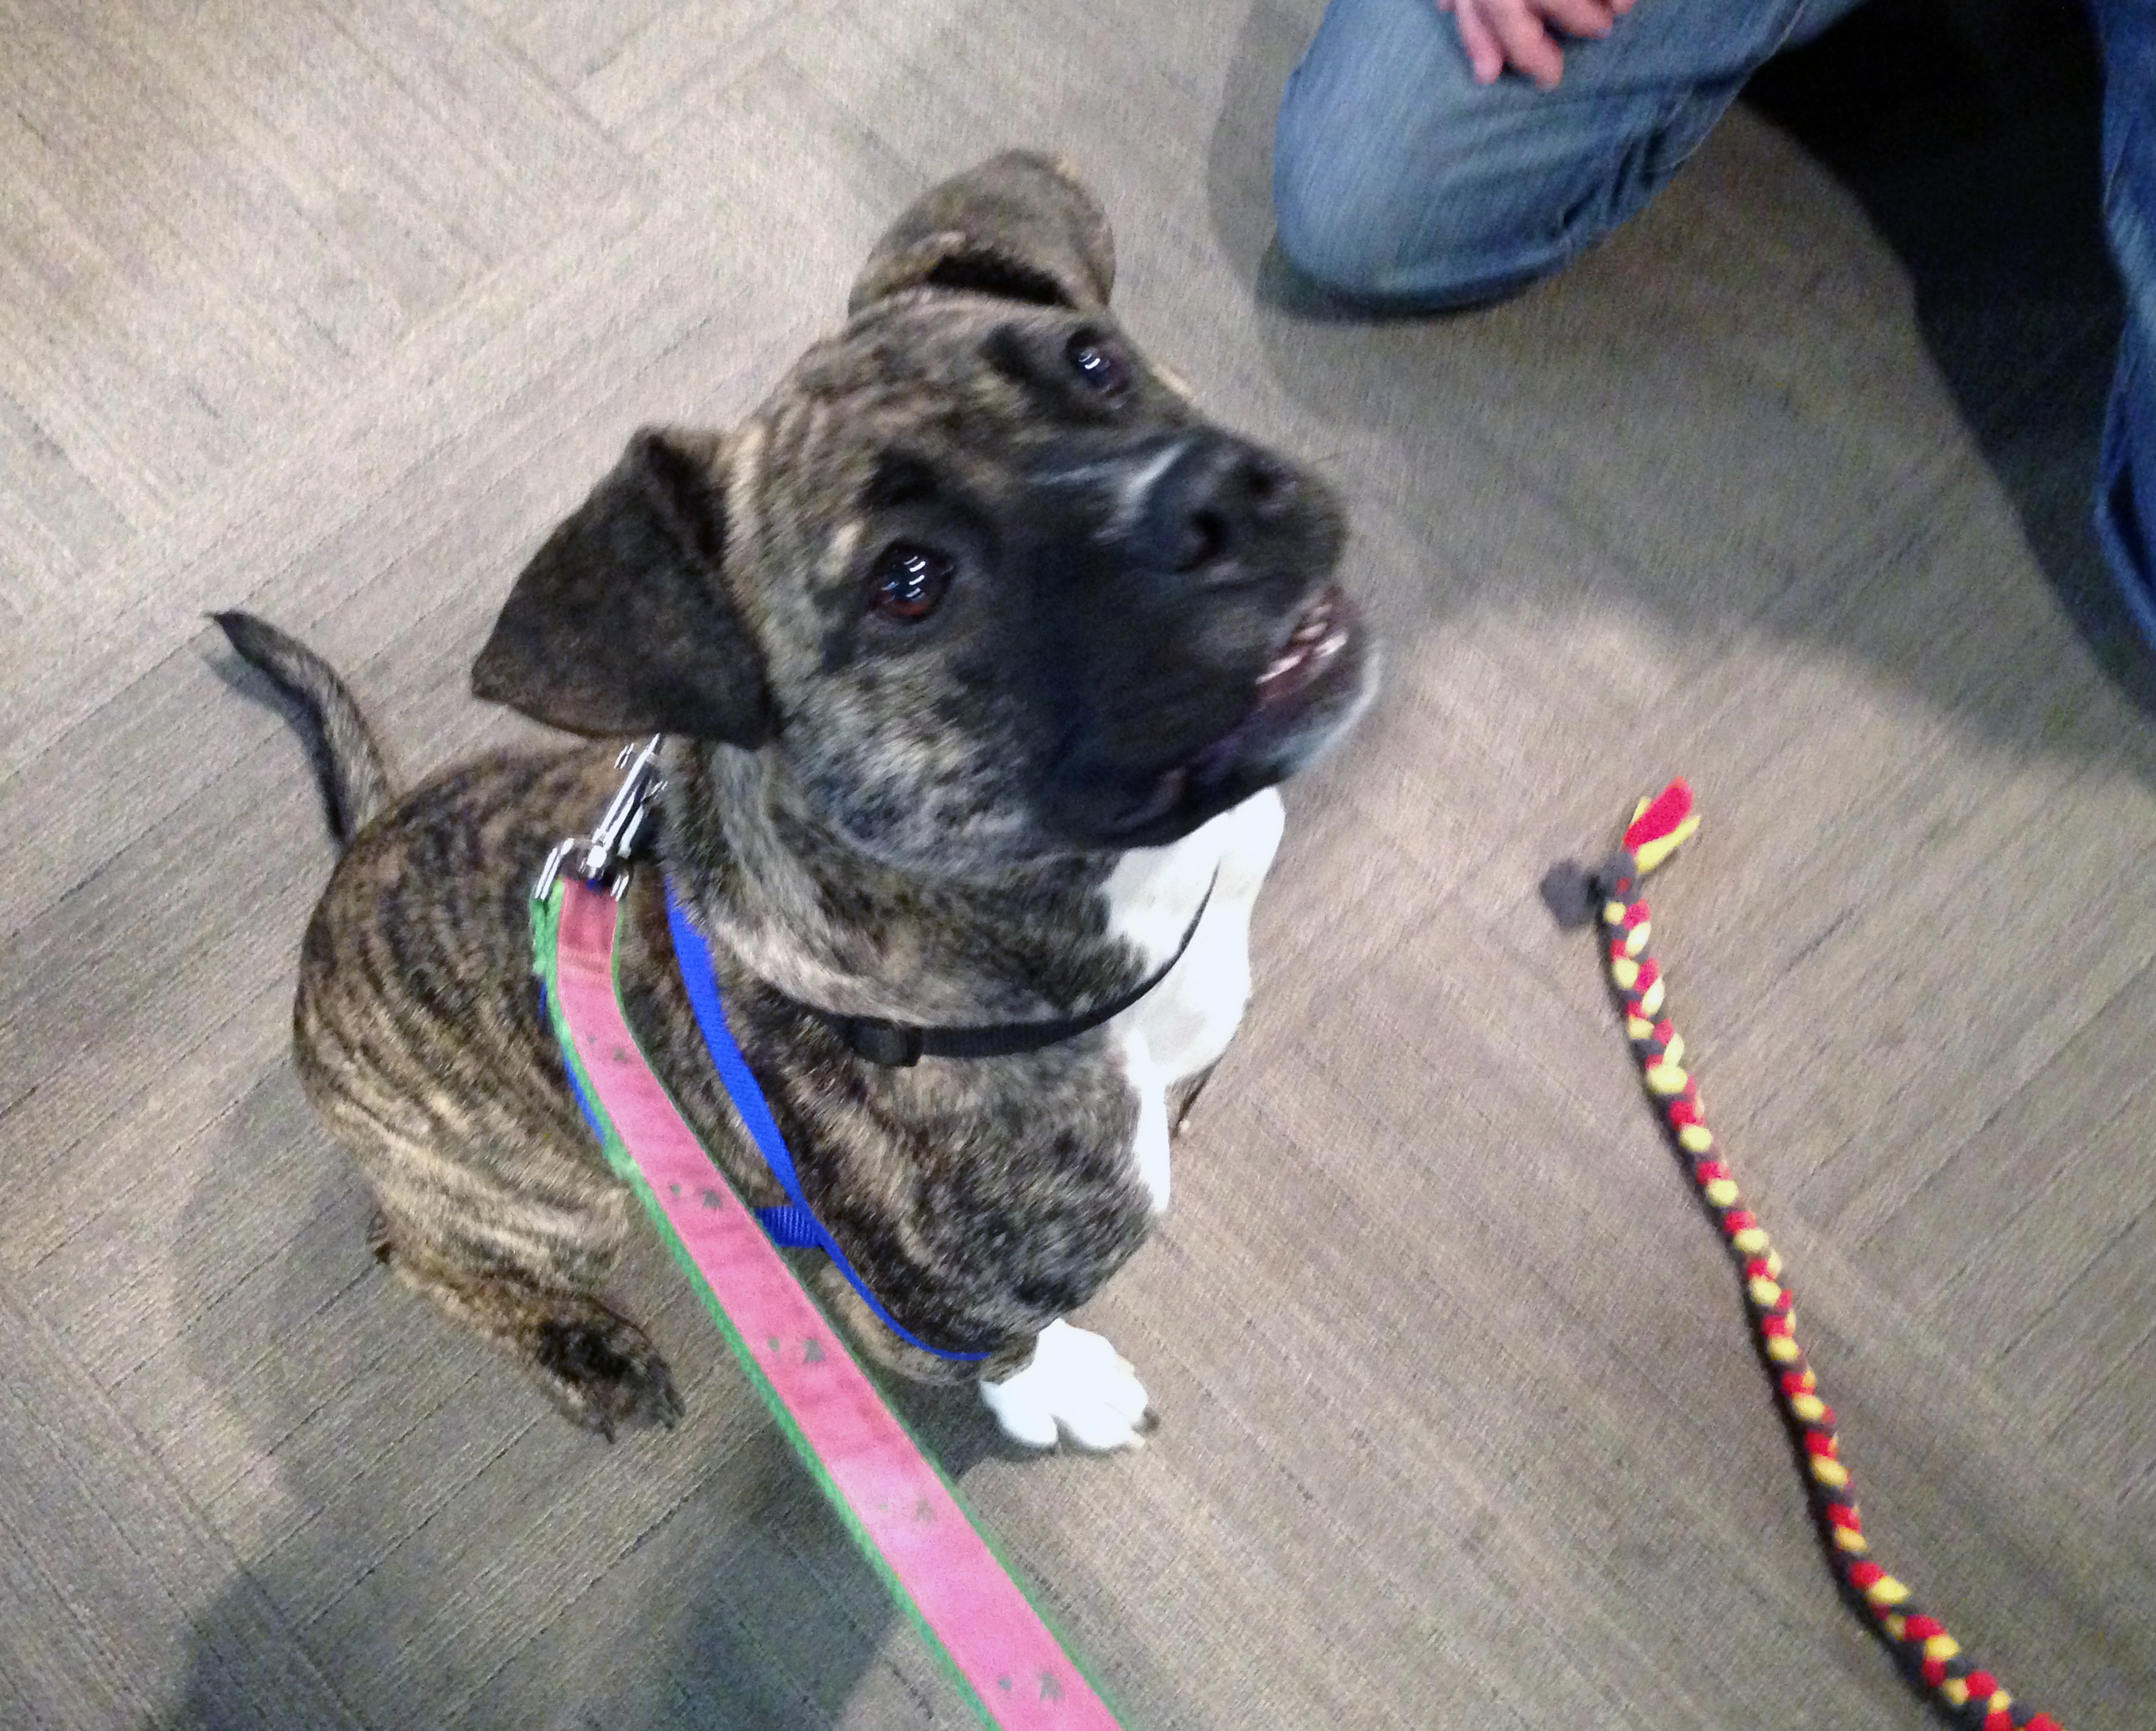 Pet of the week: Ballerina